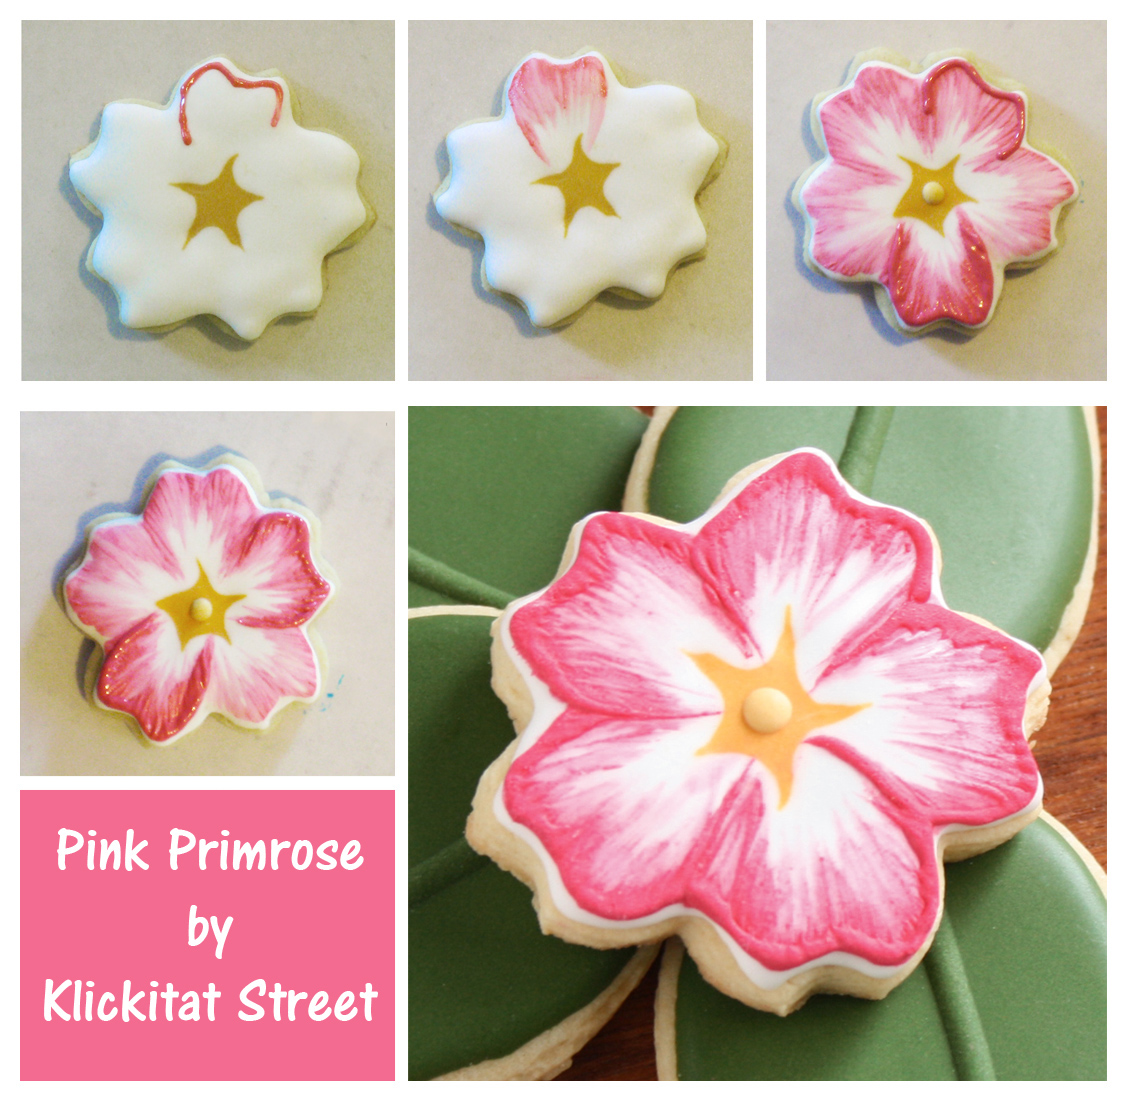 decorated sugar cookies made to look like pink primrose flowers by Klickitat Street